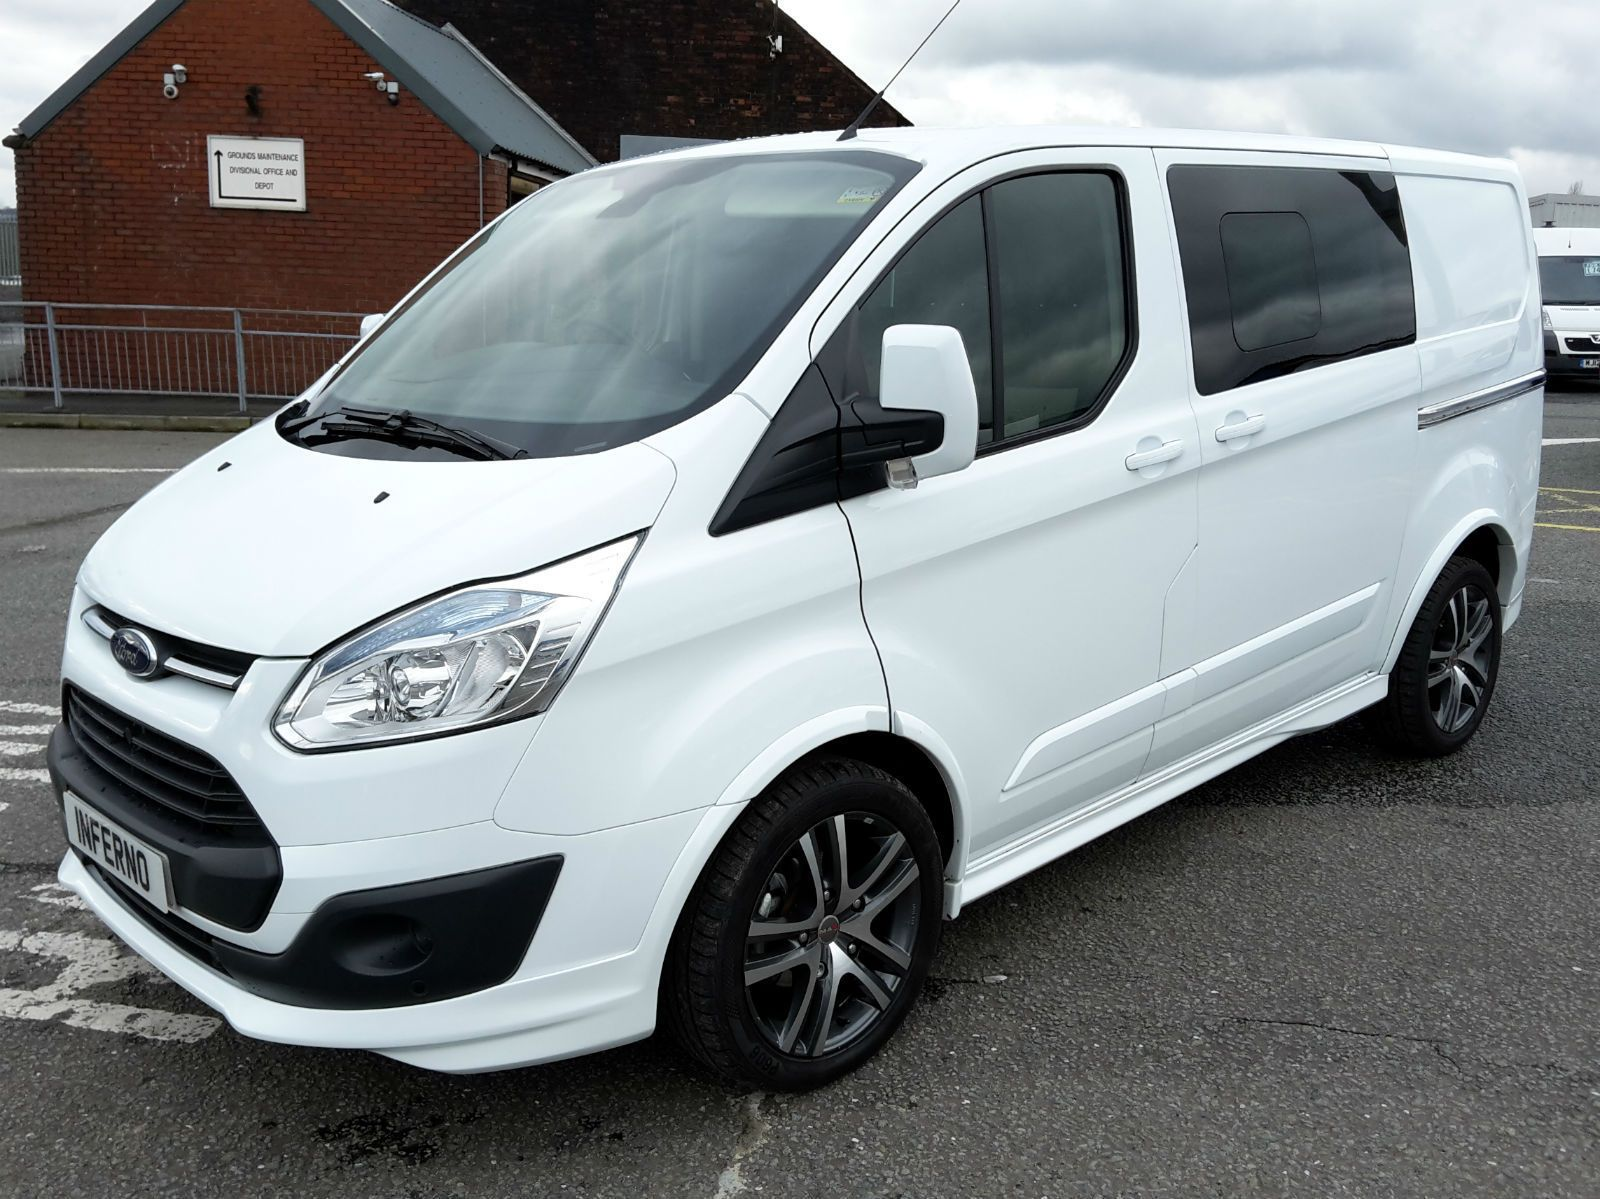 Used 2016 Ford Transit Custom 290 L1 M Sport Double Cab Van 2 2